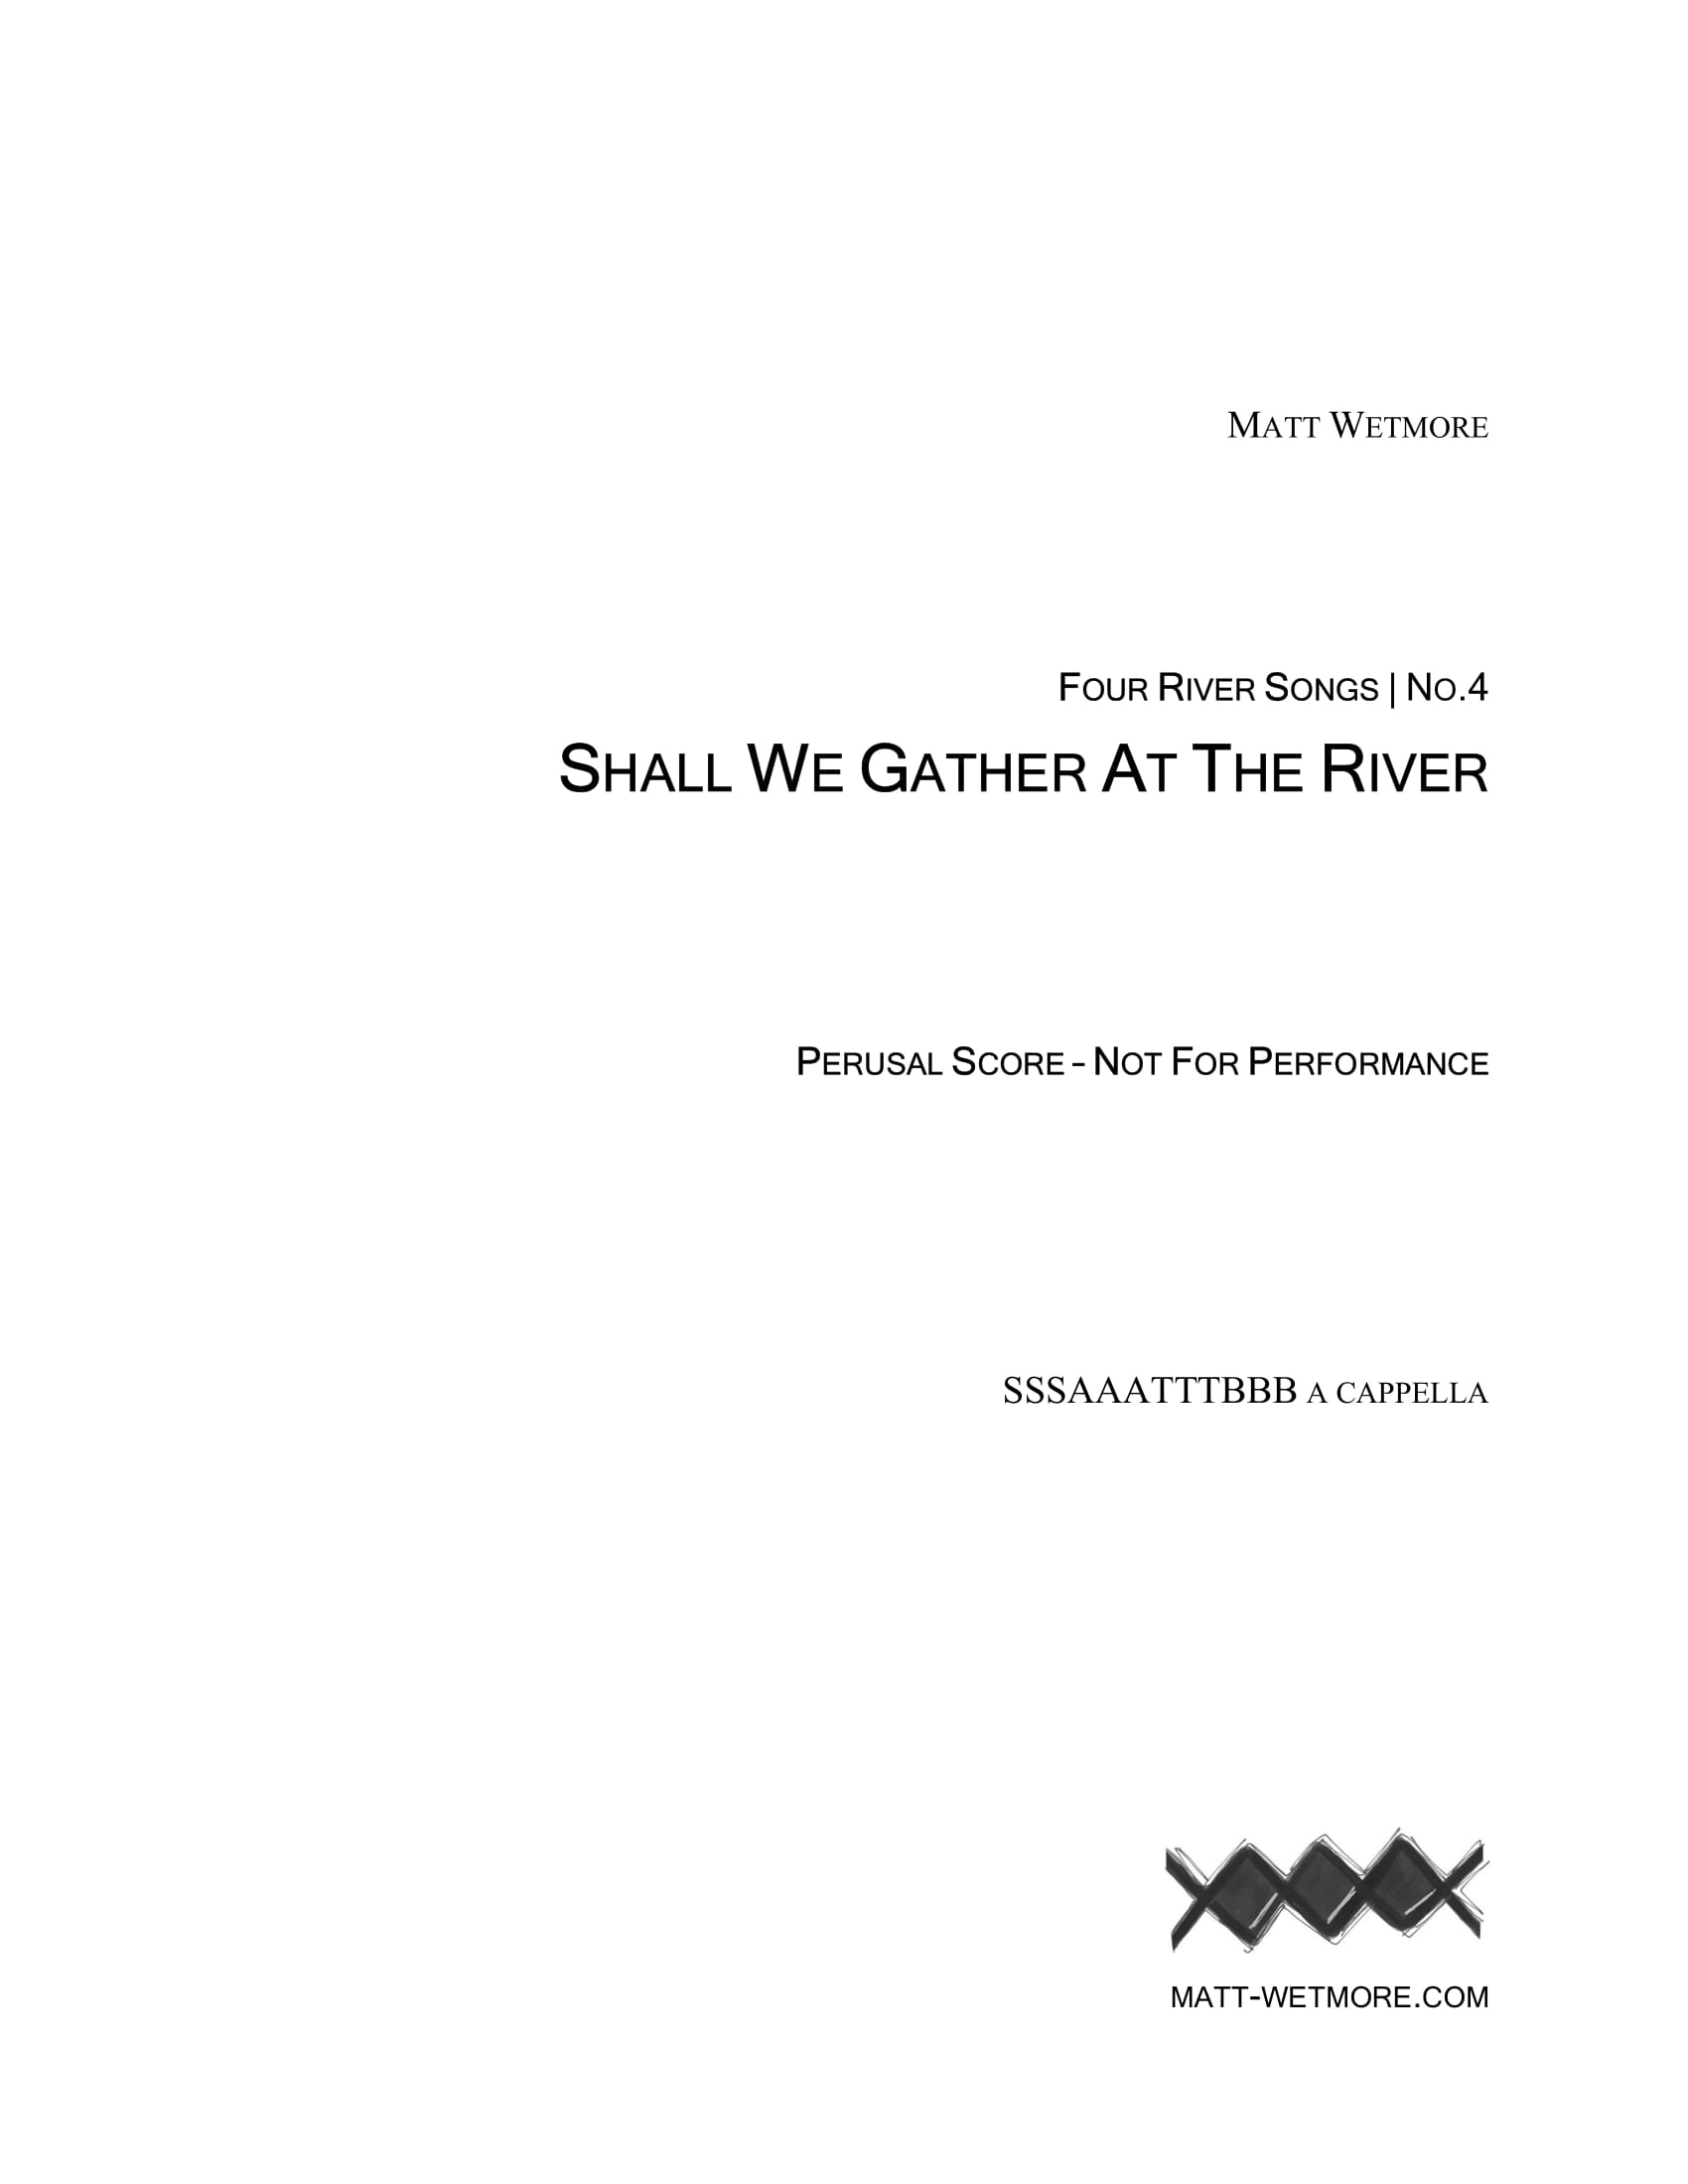 Shall We Gather At The River - Perusal-01.jpg